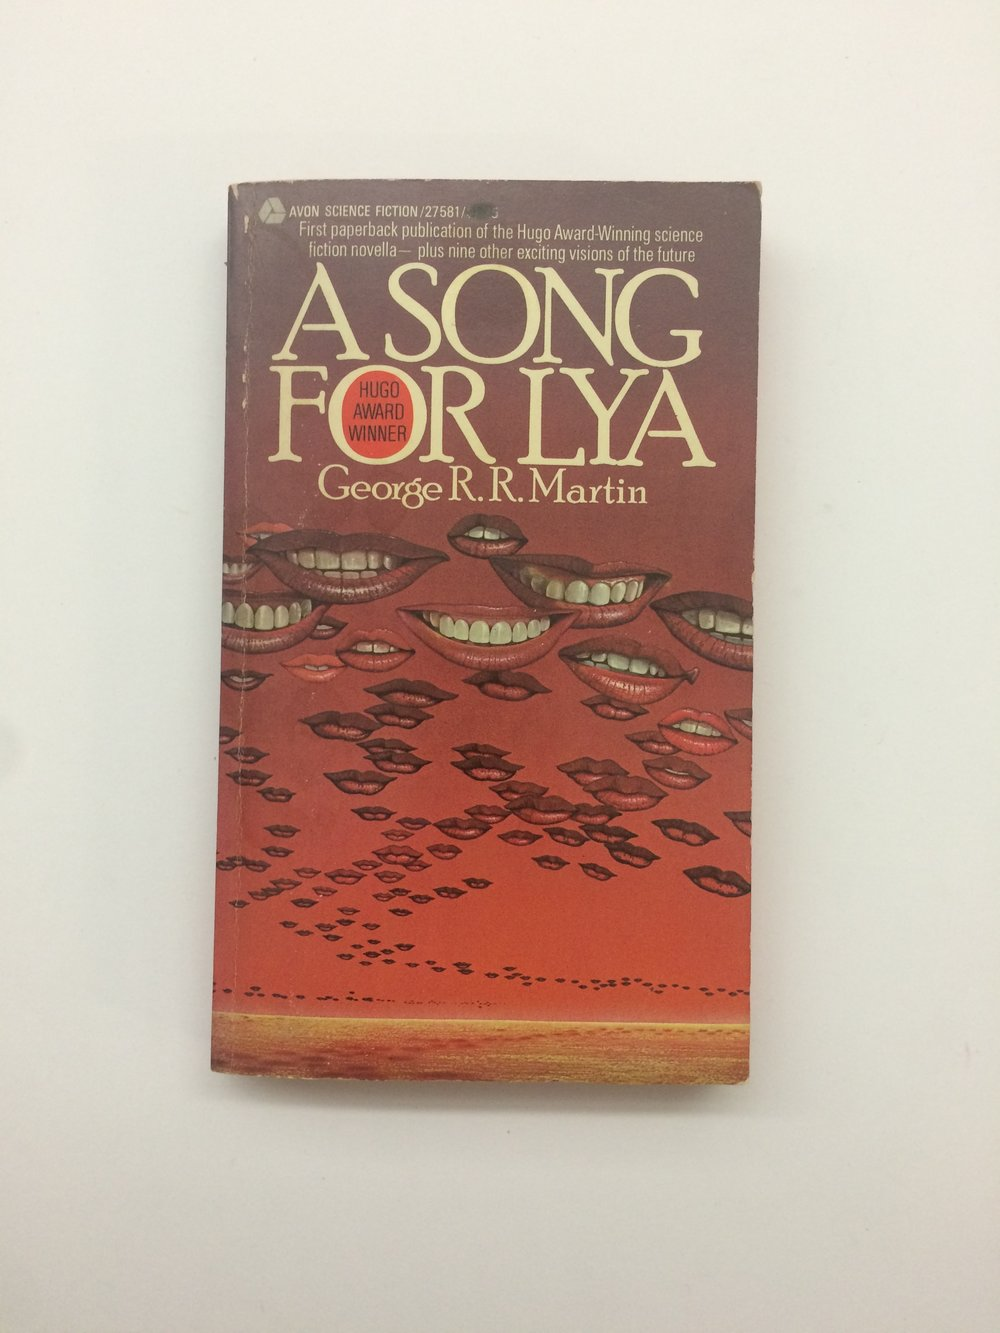 'A Song For Lya' by George R.R.Martin- 1st edition 1976